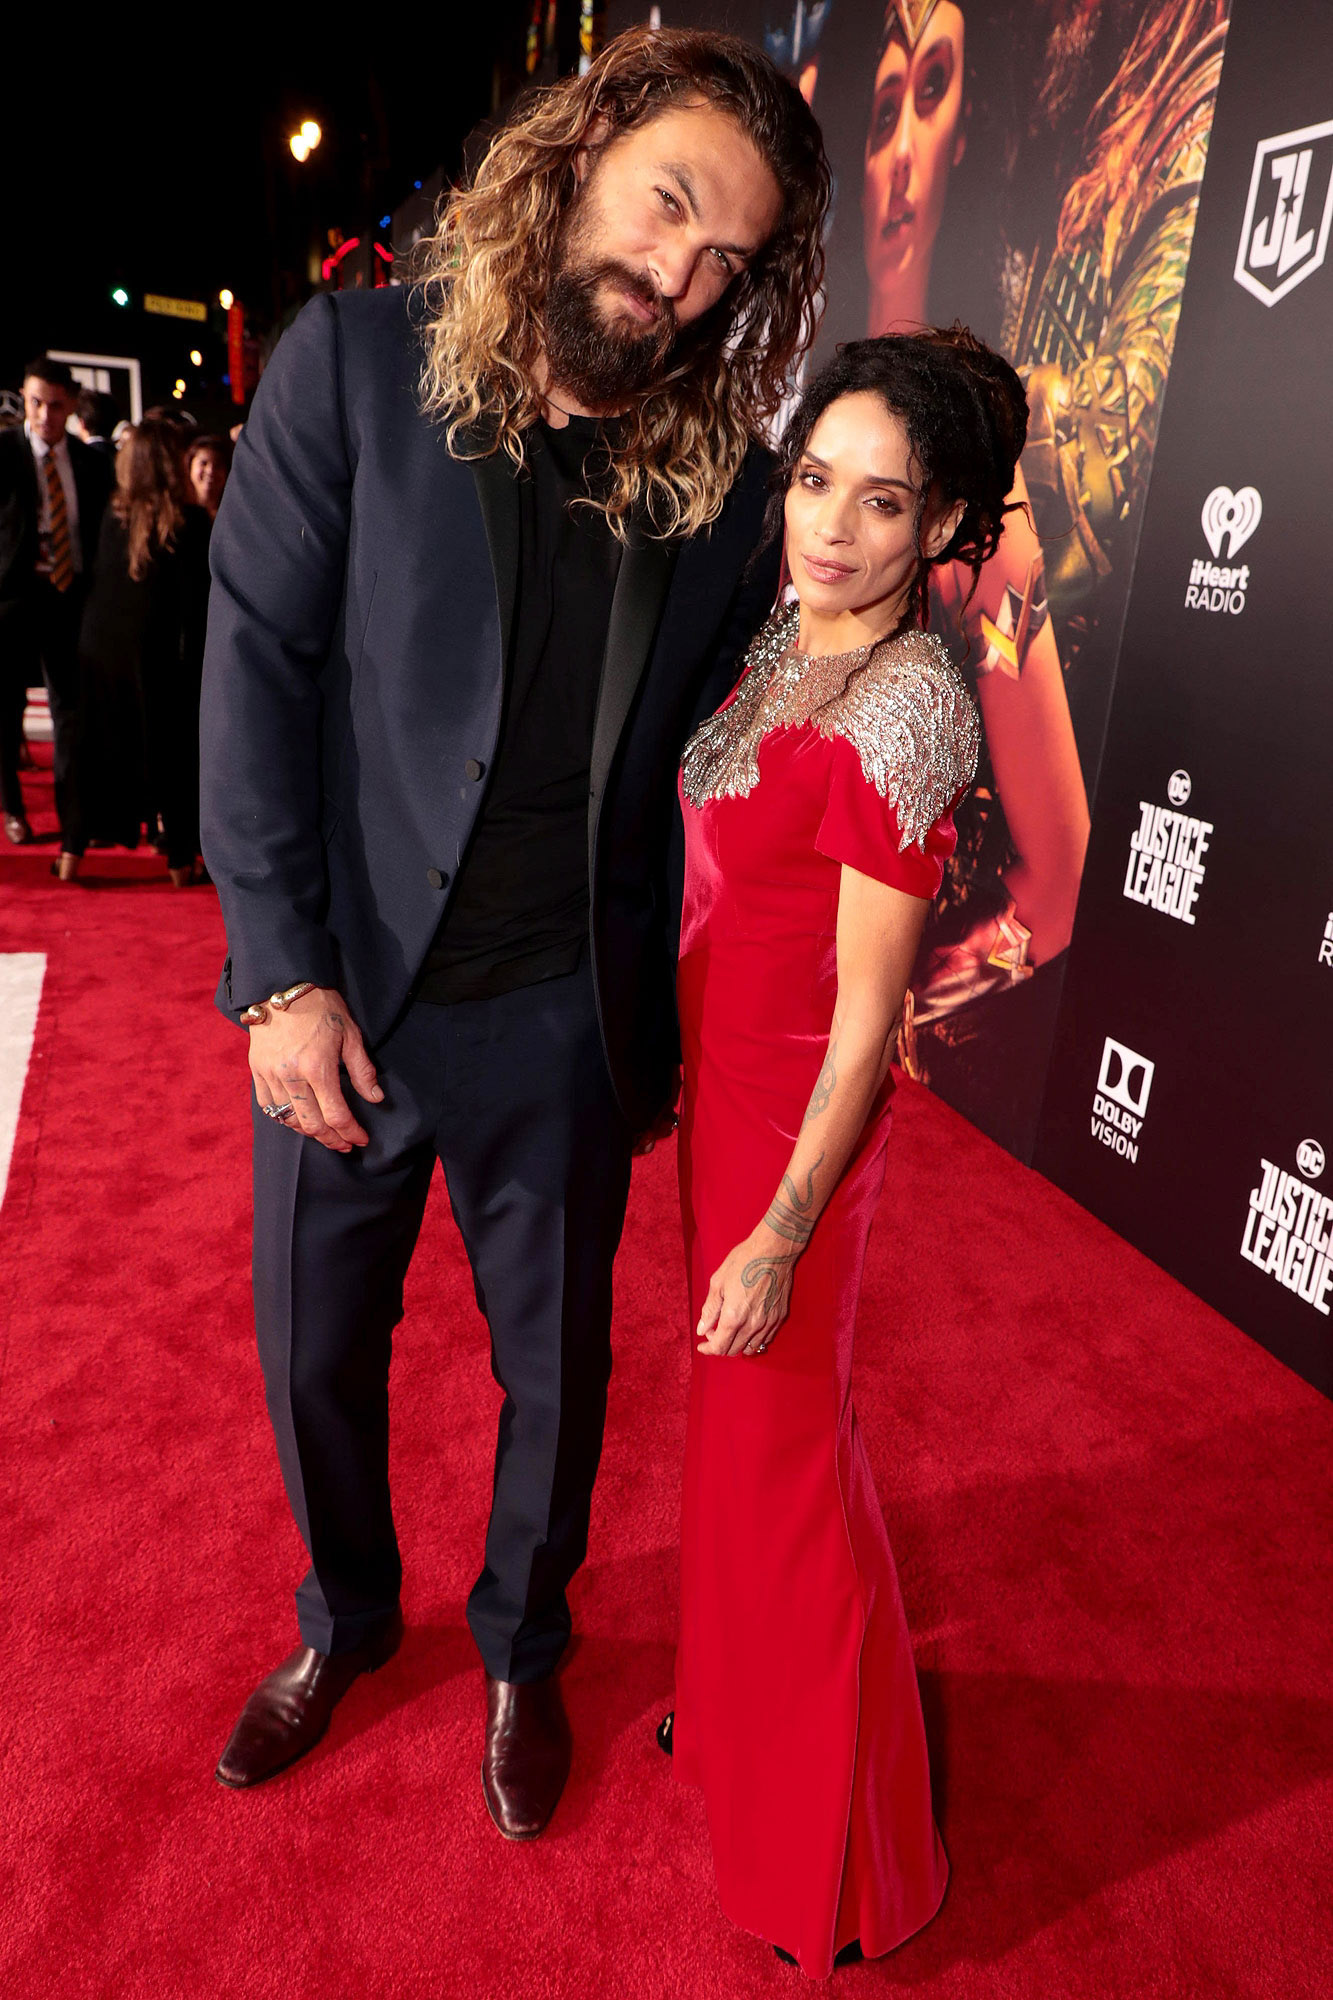 11. Jason Momoa - Age: 39Wife: Lisa Bonet, 51Age Difference: 12 yearsYears Together: 14Kids: 2